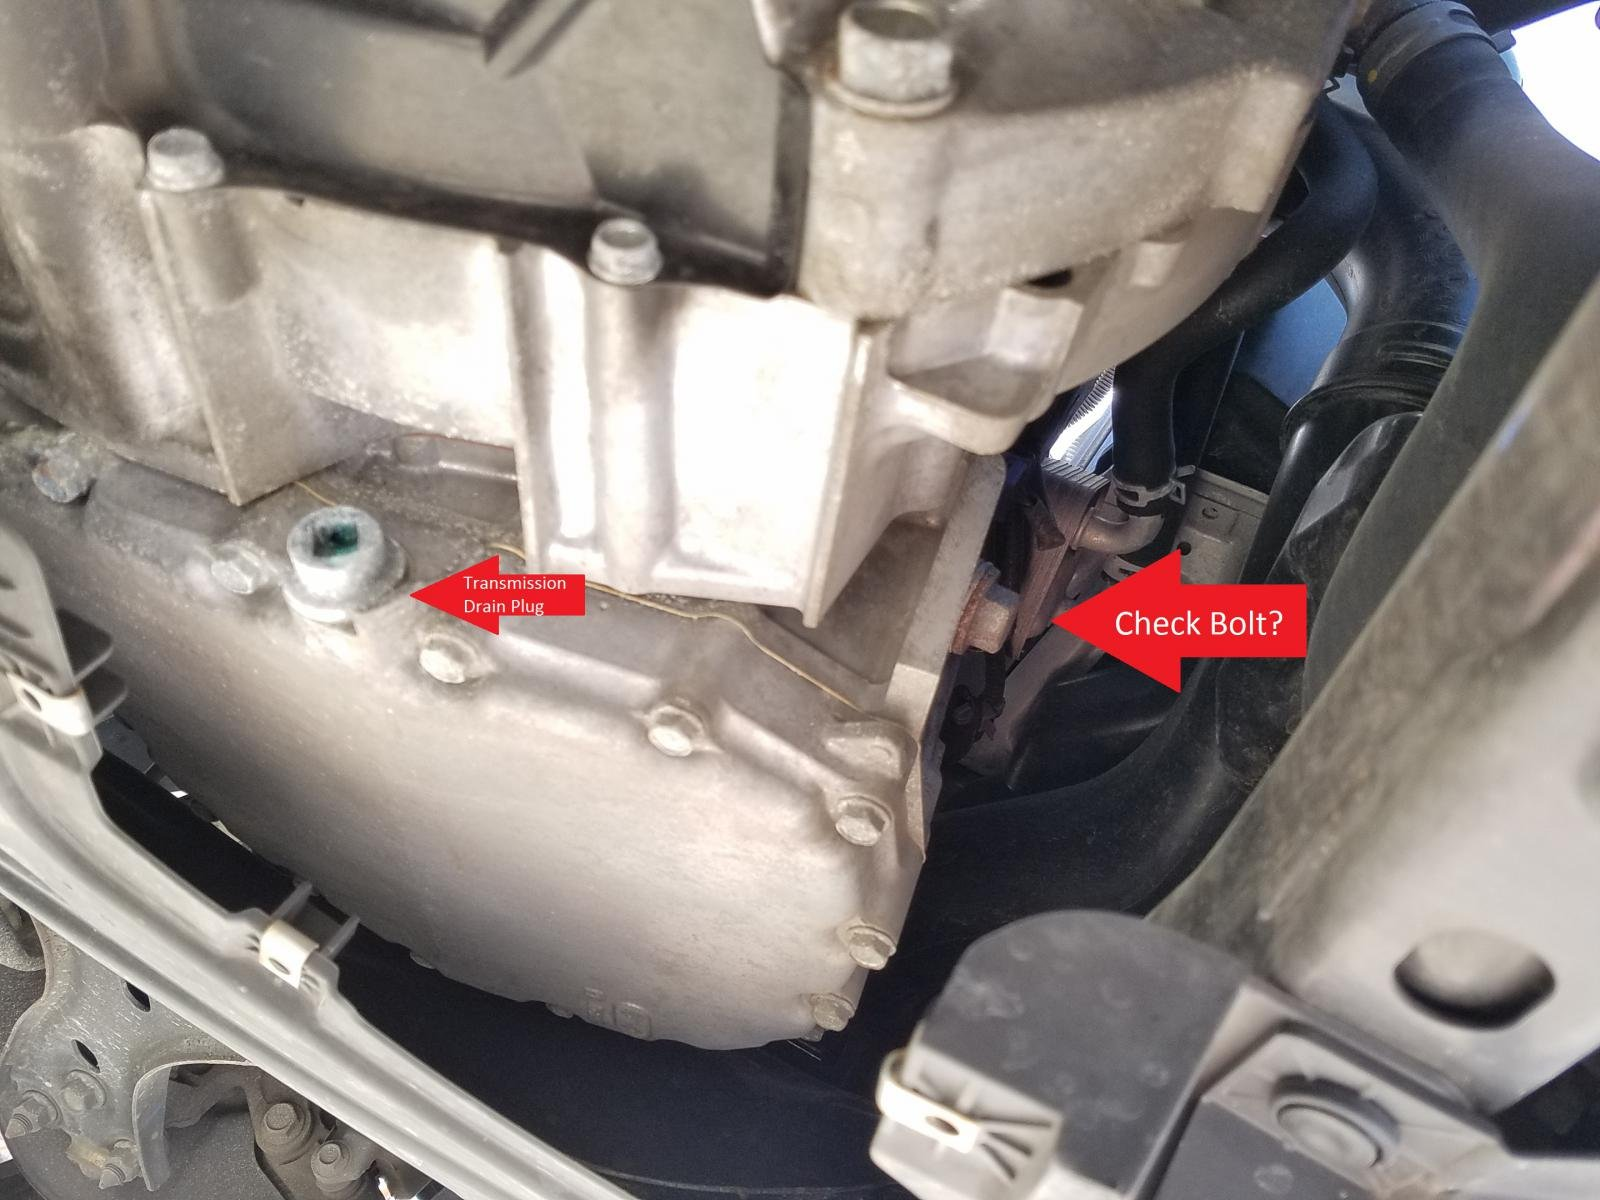 2017 Cvt Transmission Fluid Change 20161113 141254 Copy Jpg